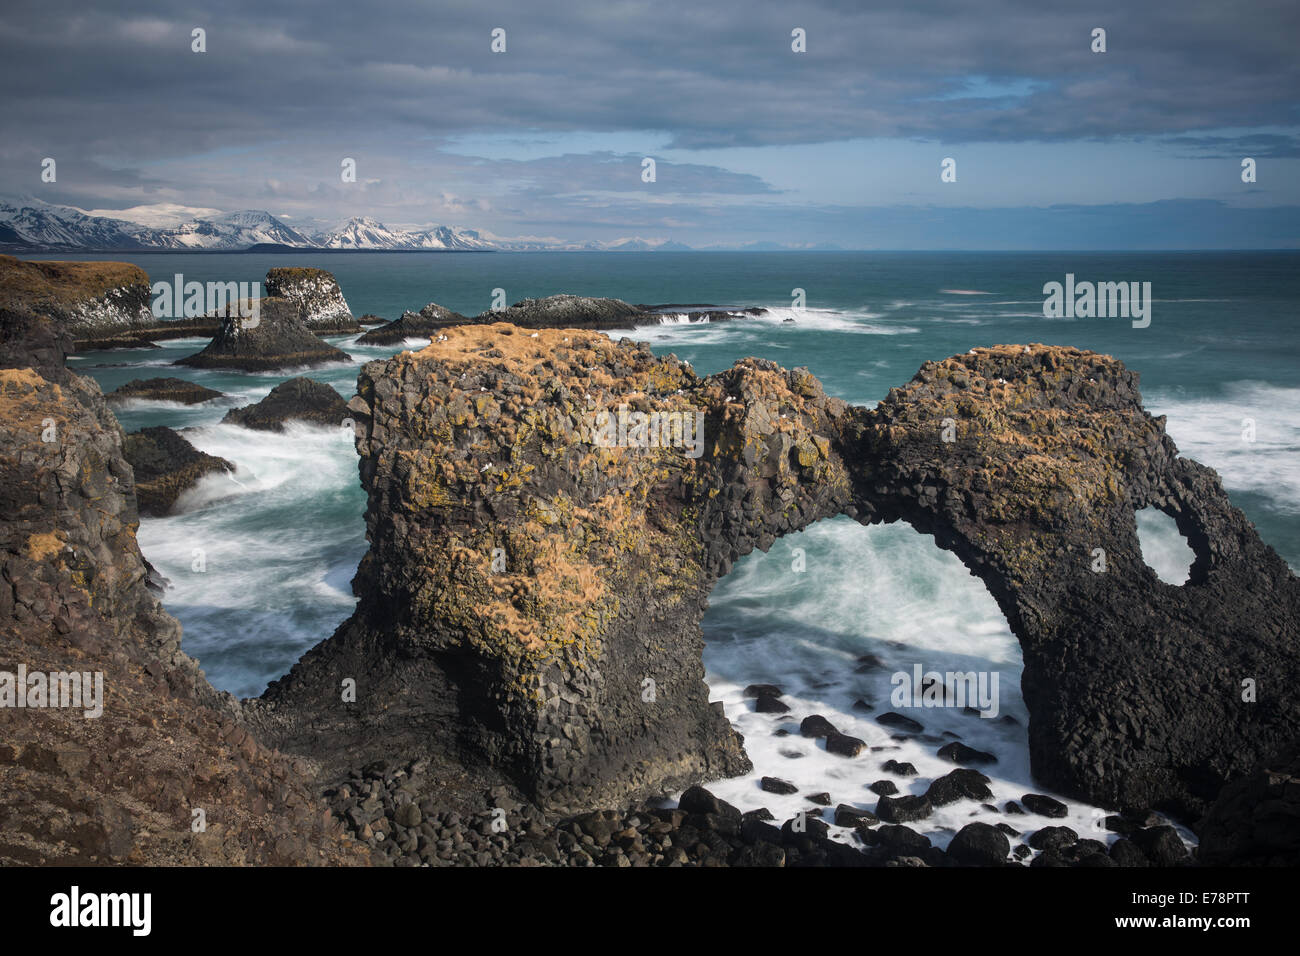 the rock arch of Gatklettur on the coast nr Arnastapi, Snaefellsnes Peninsula, western Iceland - Stock Image